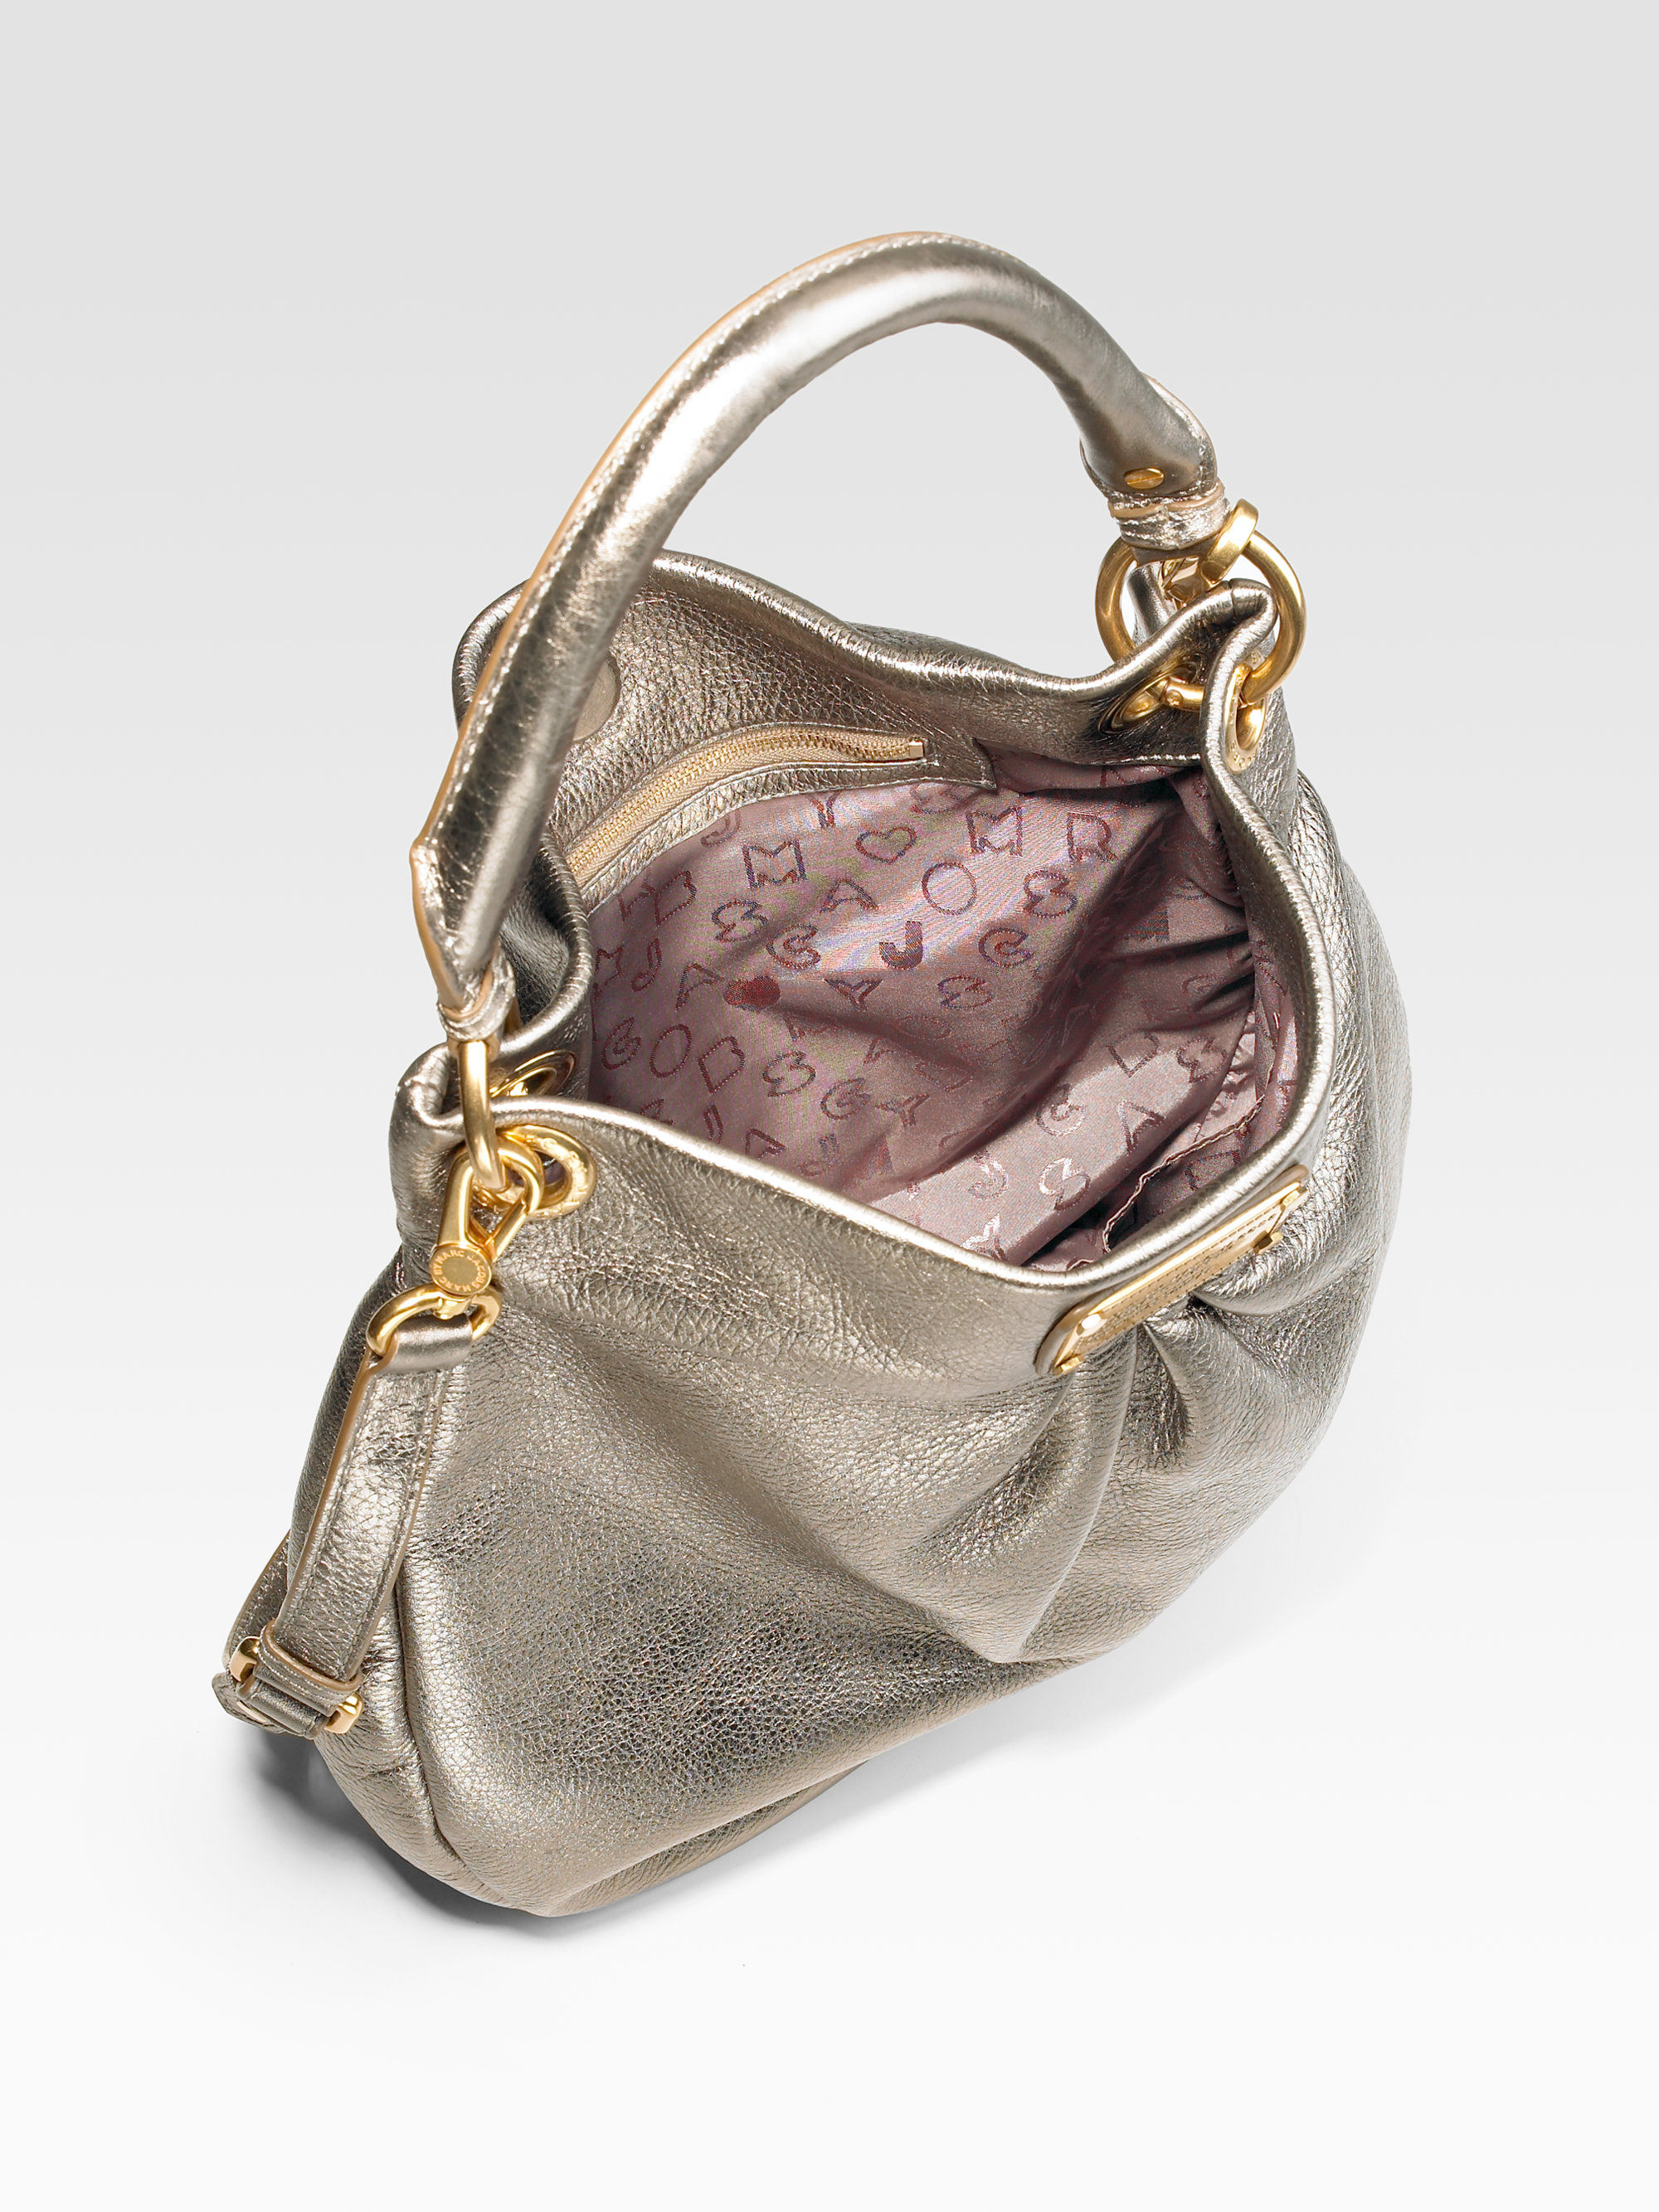 023dfcd2b5 Marc By Marc Jacobs Classic Q Metallic Leather Hillier Hobo Bag in ...